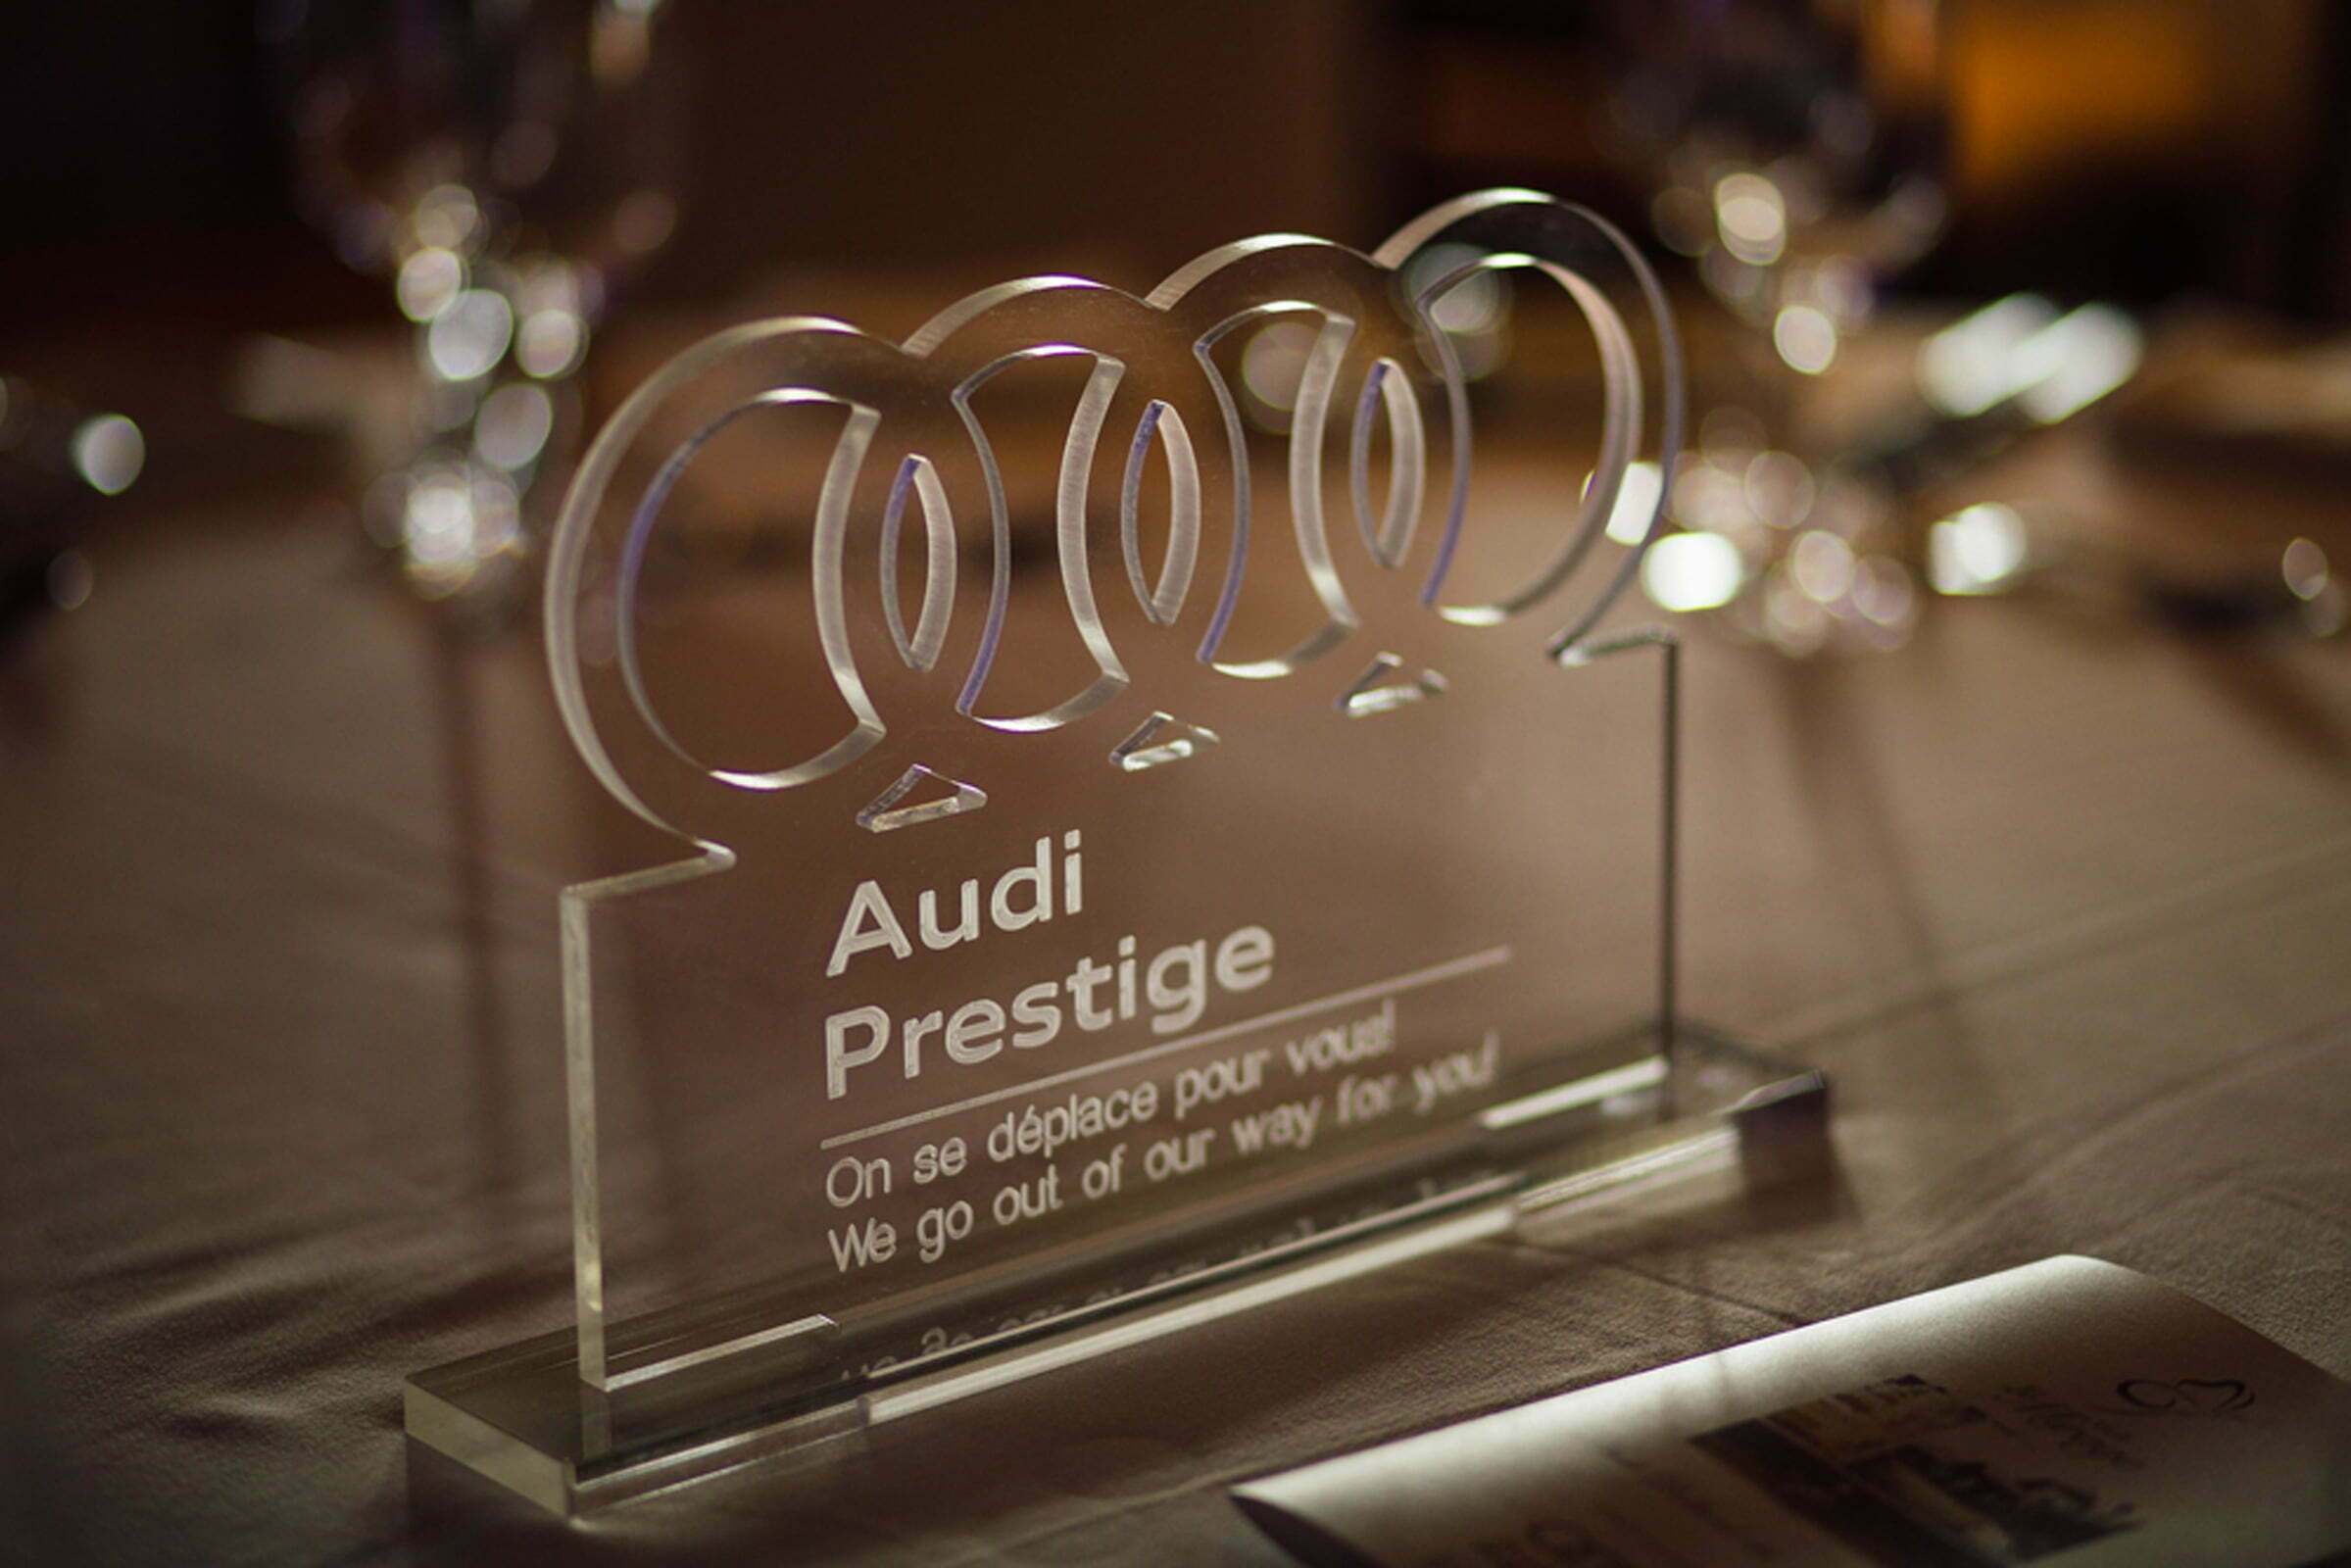 Audi Prestige golf tournament